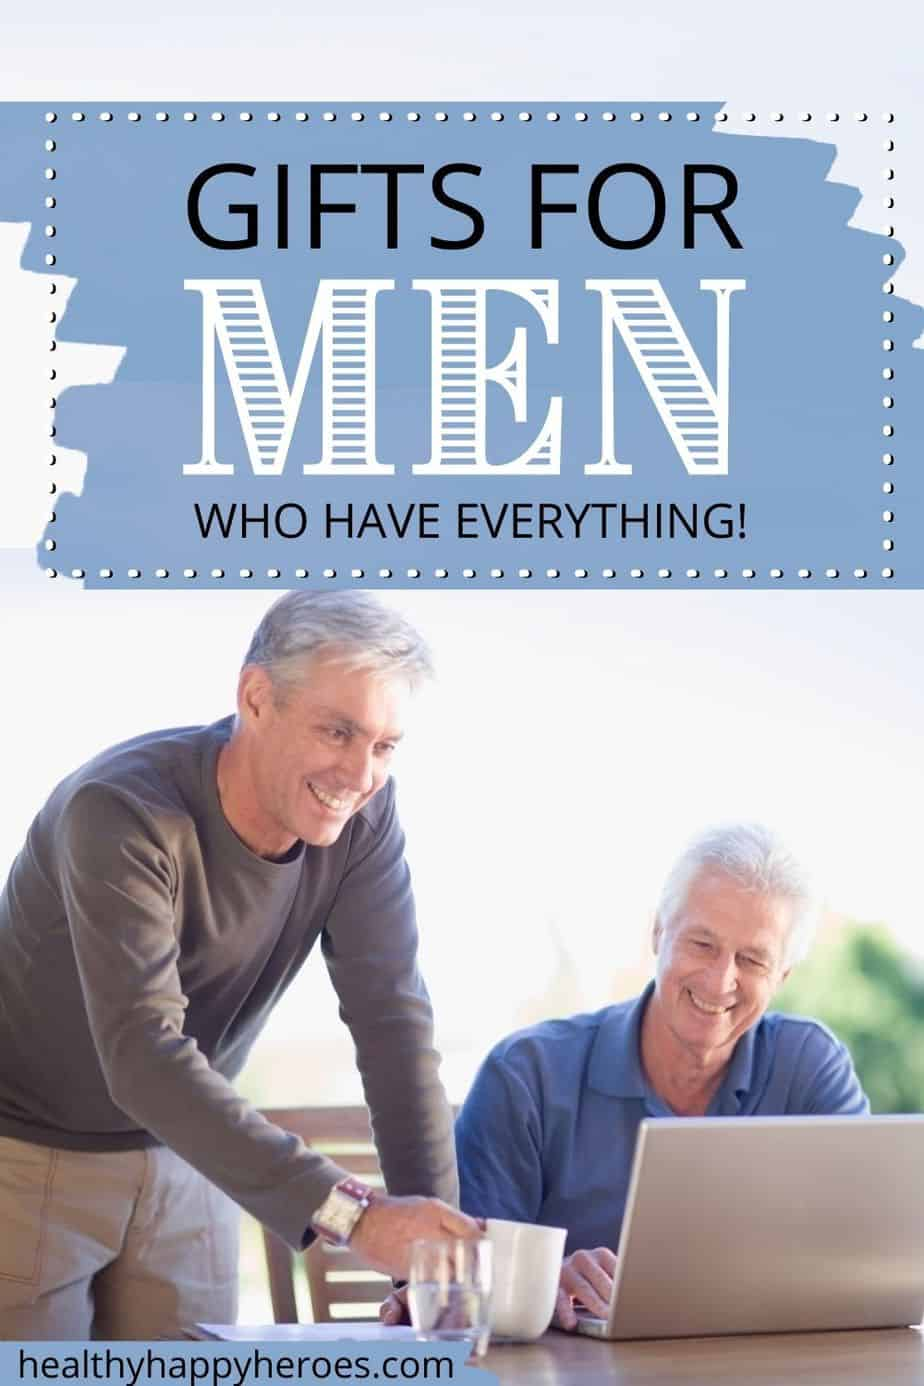 gifts for men over 50 graphic